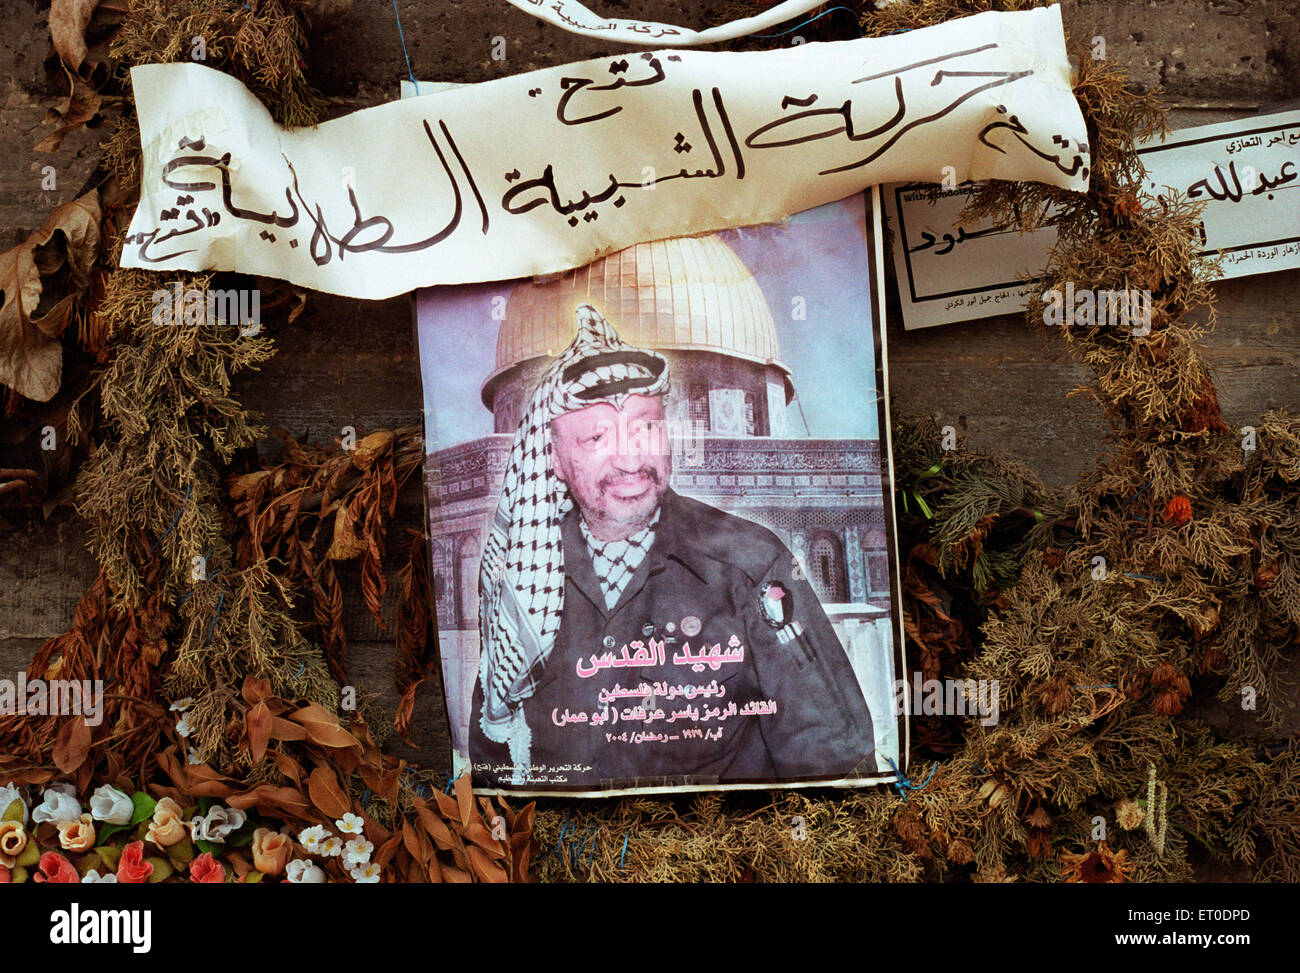 Picture of Yasser Arafat in a flower wreath - Stock Image